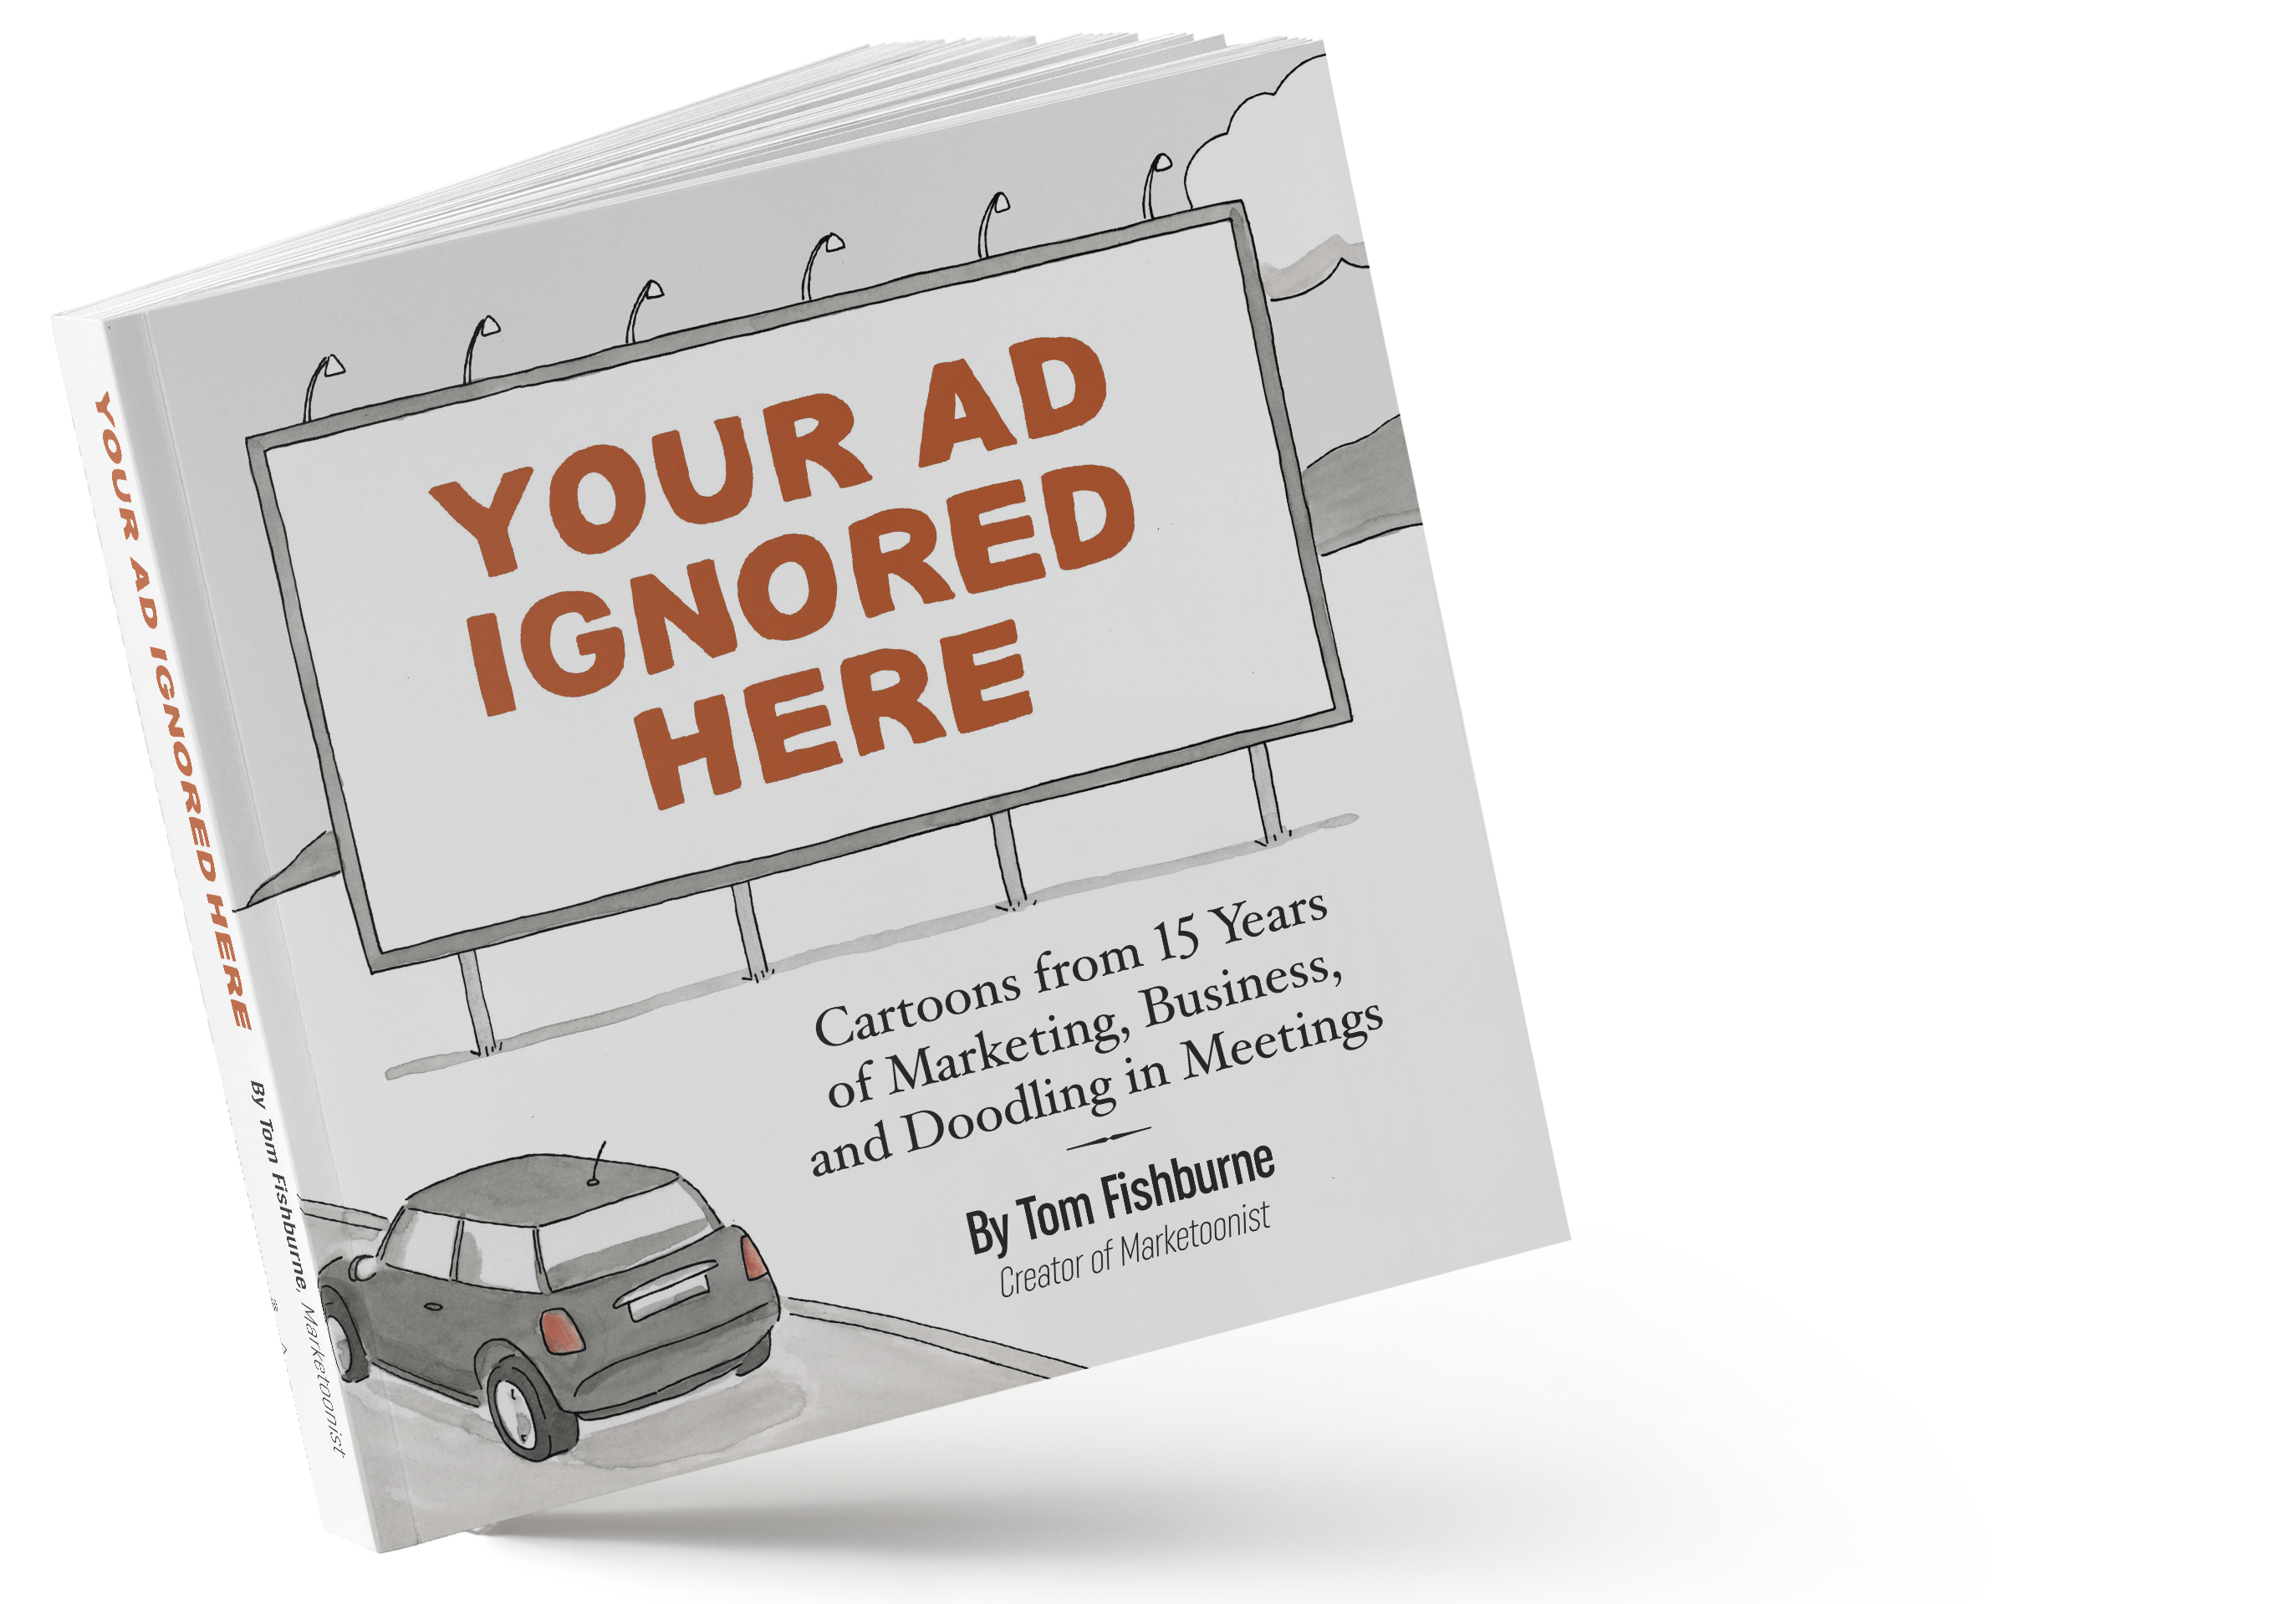 Your ad ignored here. Marketing transparent cartoon graphic library download